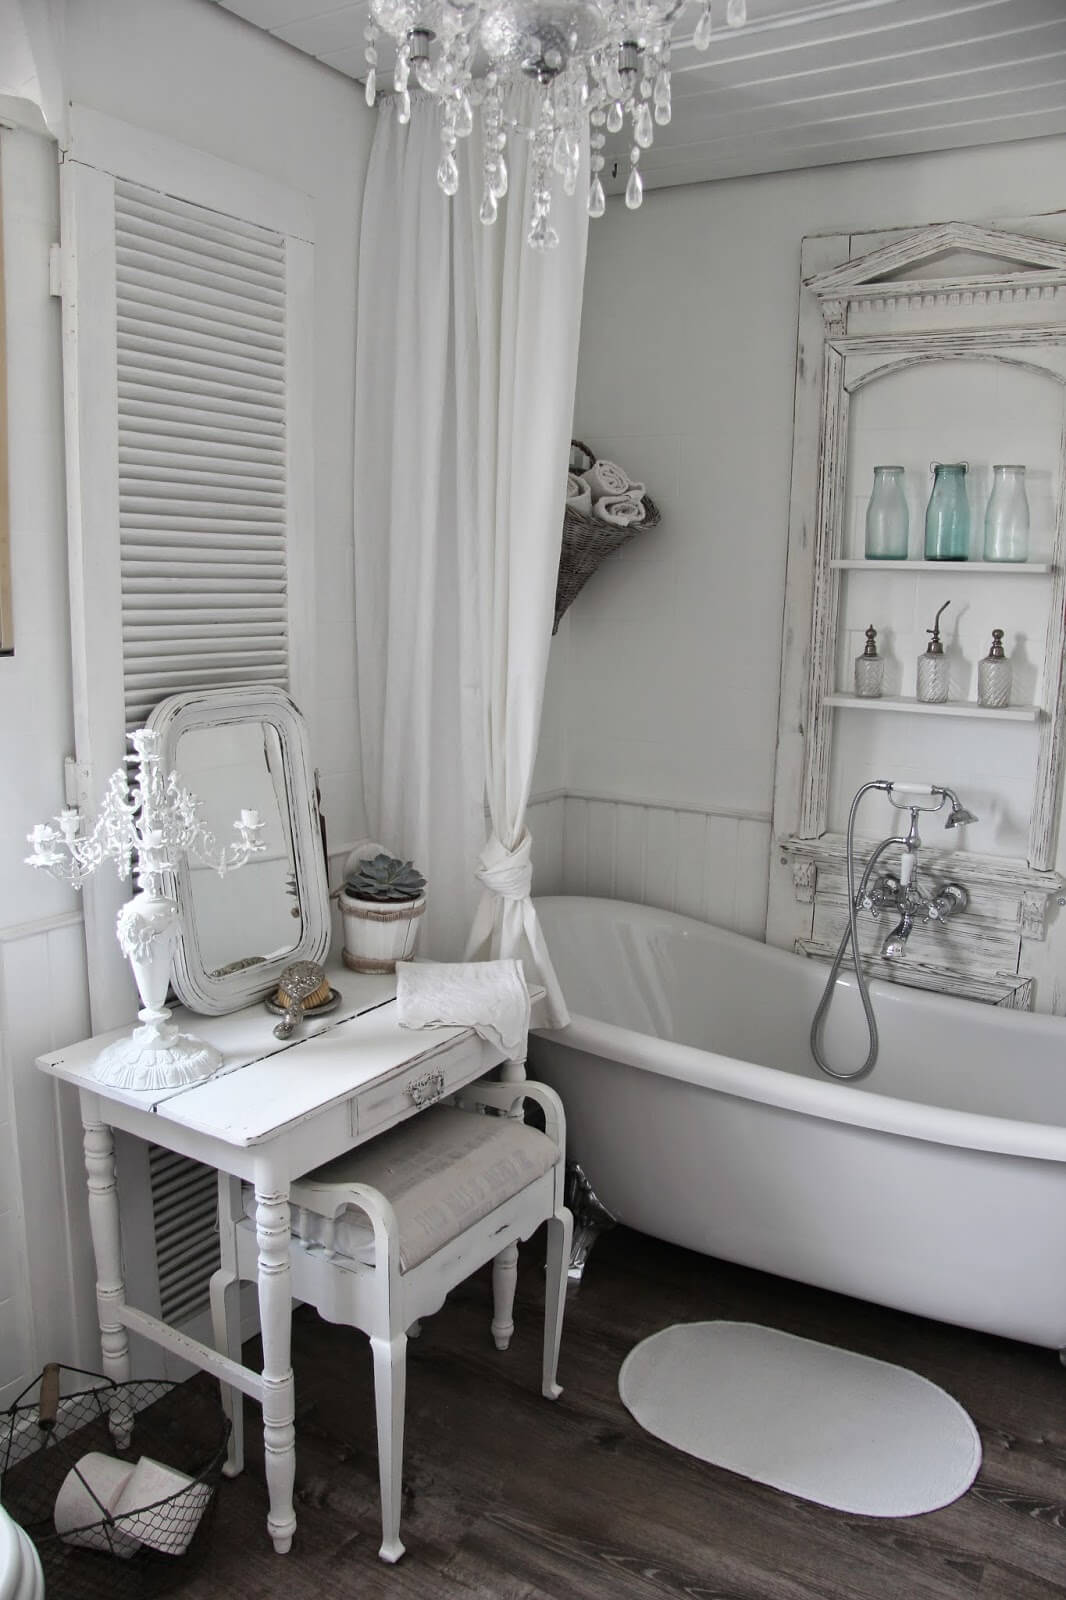 Shabby Chic Dressing Table and Tub Shelving